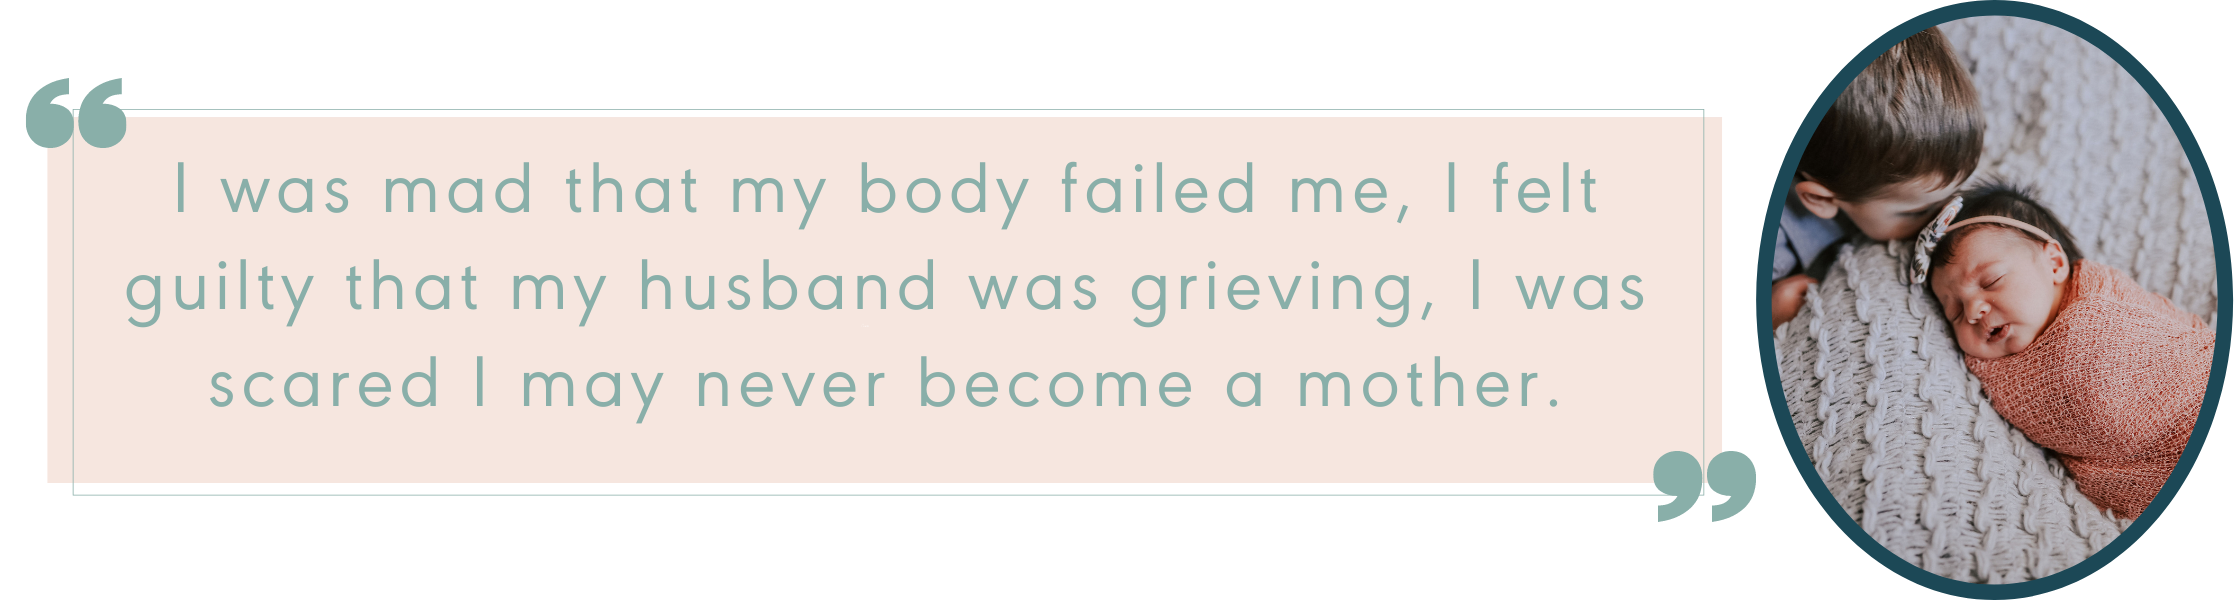 Pregnancy Loss Quote